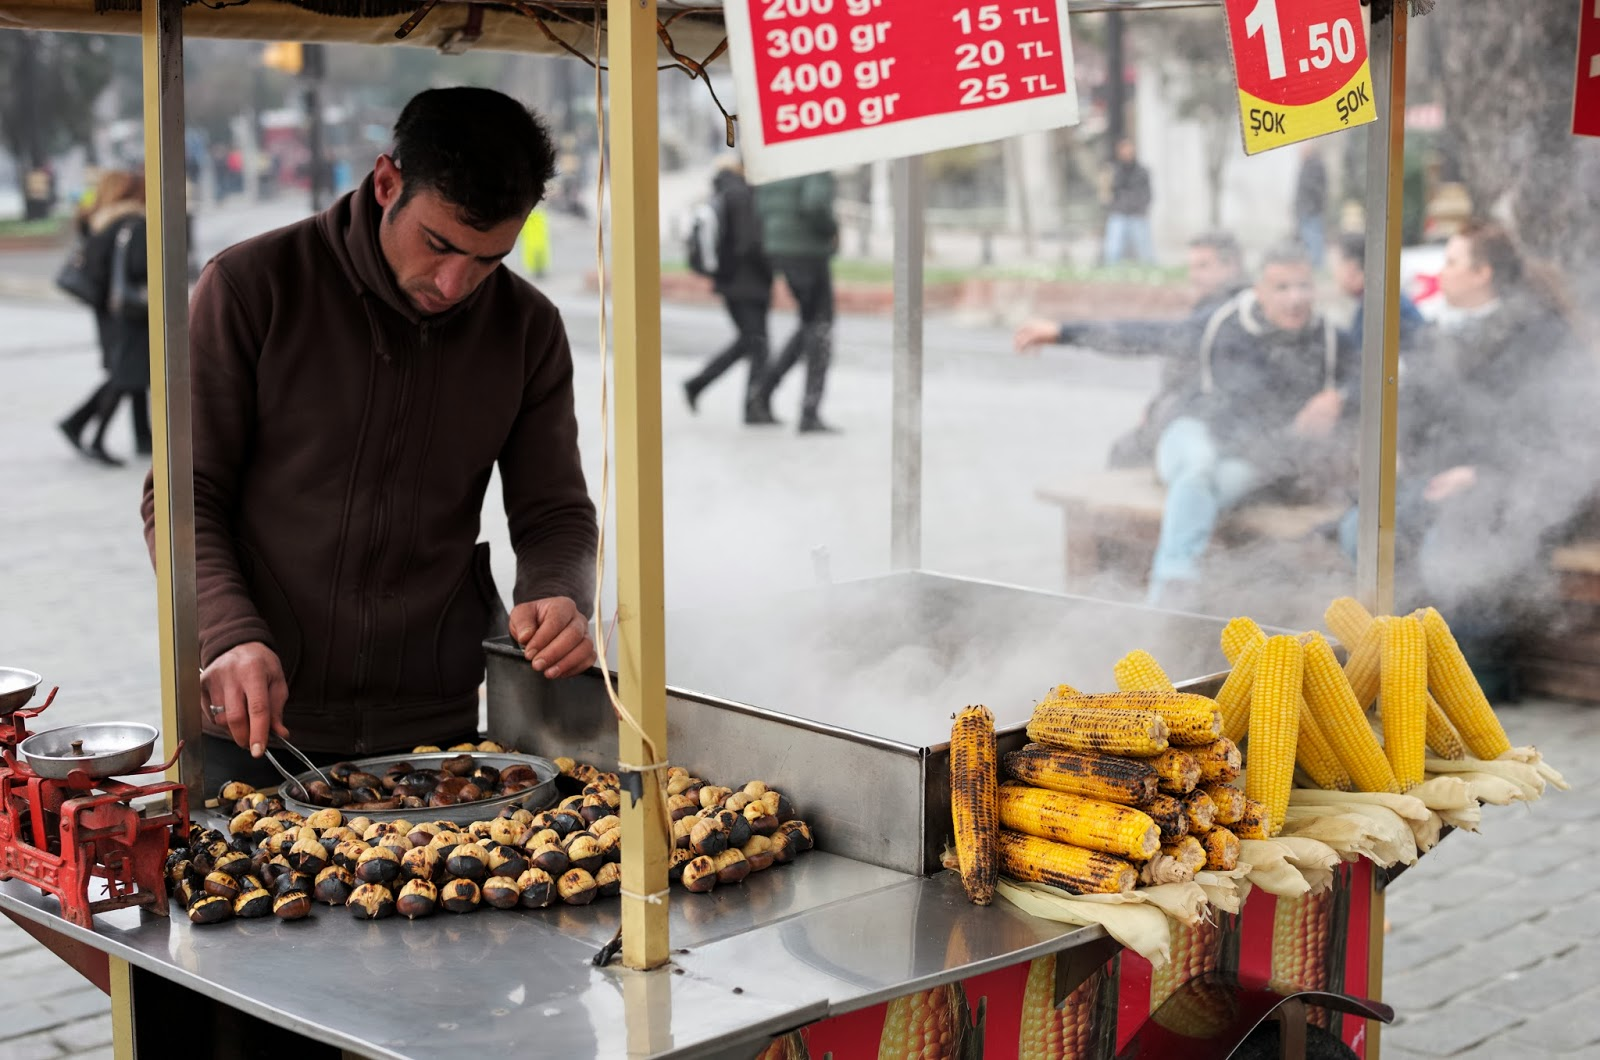 ROASTED CHESTNUTS AND ROASTED CORN (PHOTO COURTESY OF GLOBAL GOOD FOOD)